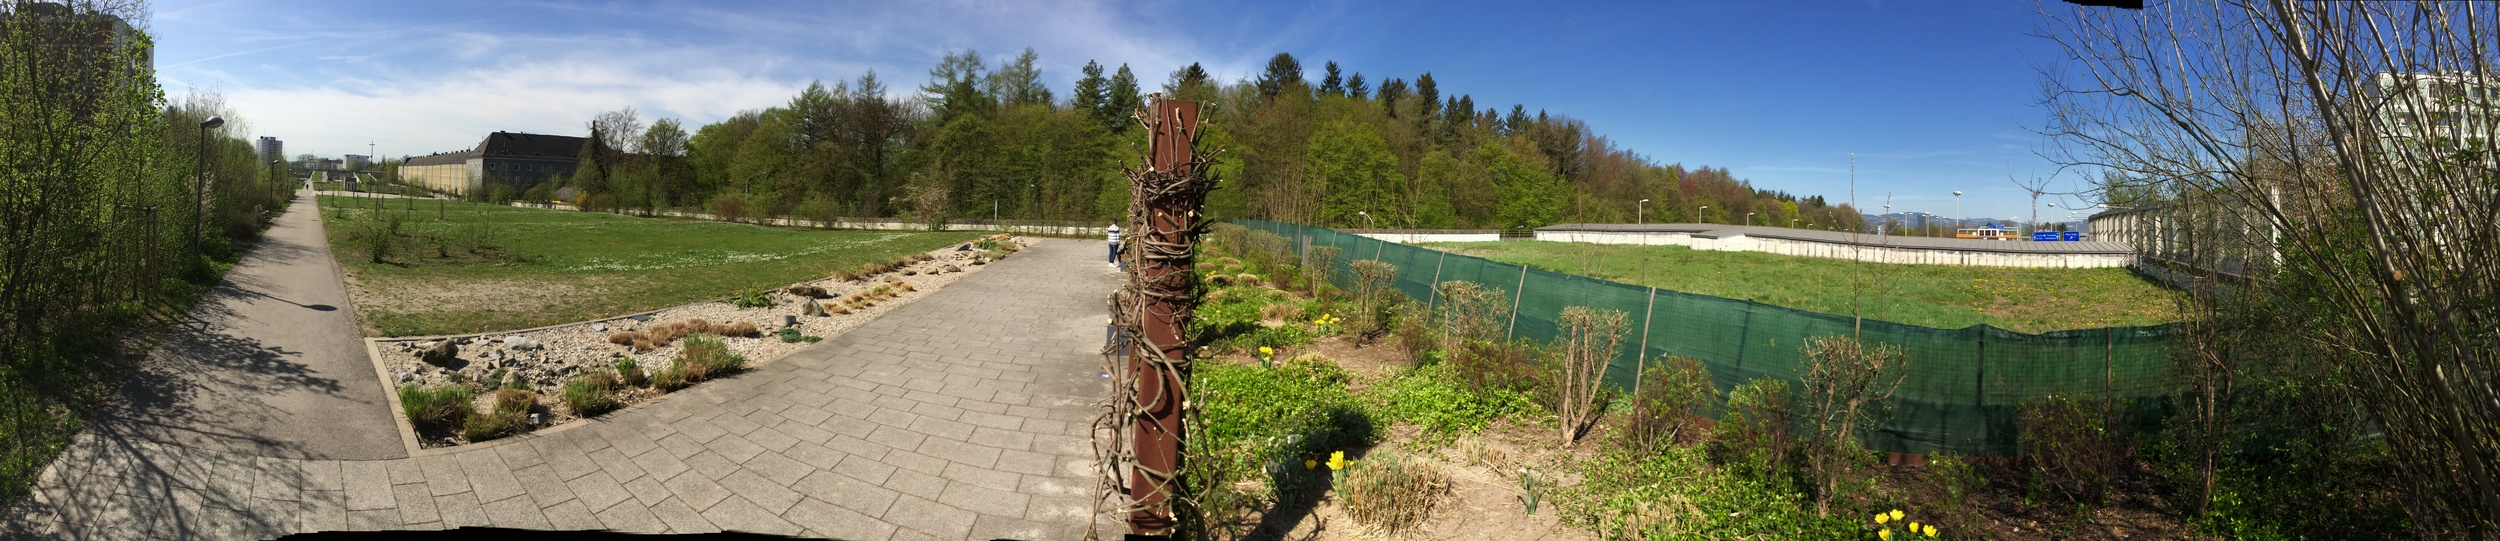 Panoramic view of the park on top of theBindermichltunnel. To the right,blue road signs can beseen at the tunnel exit.